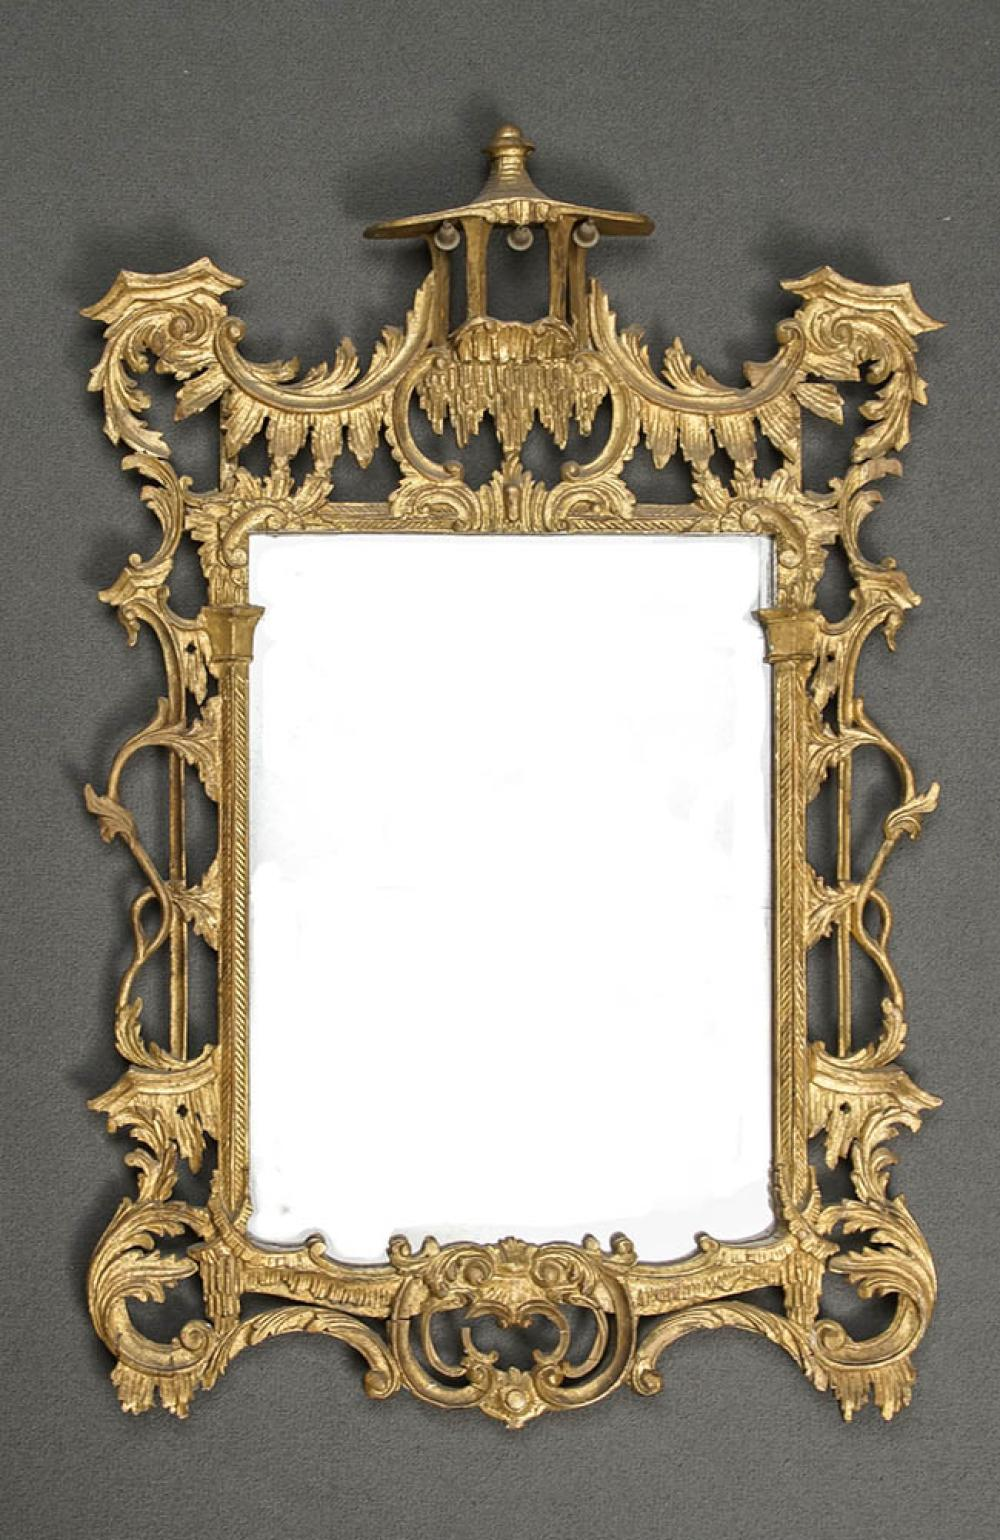 George III Style Giltwood Chinoiserie Mirror, 20th Century, 51 x 34-1/4 in